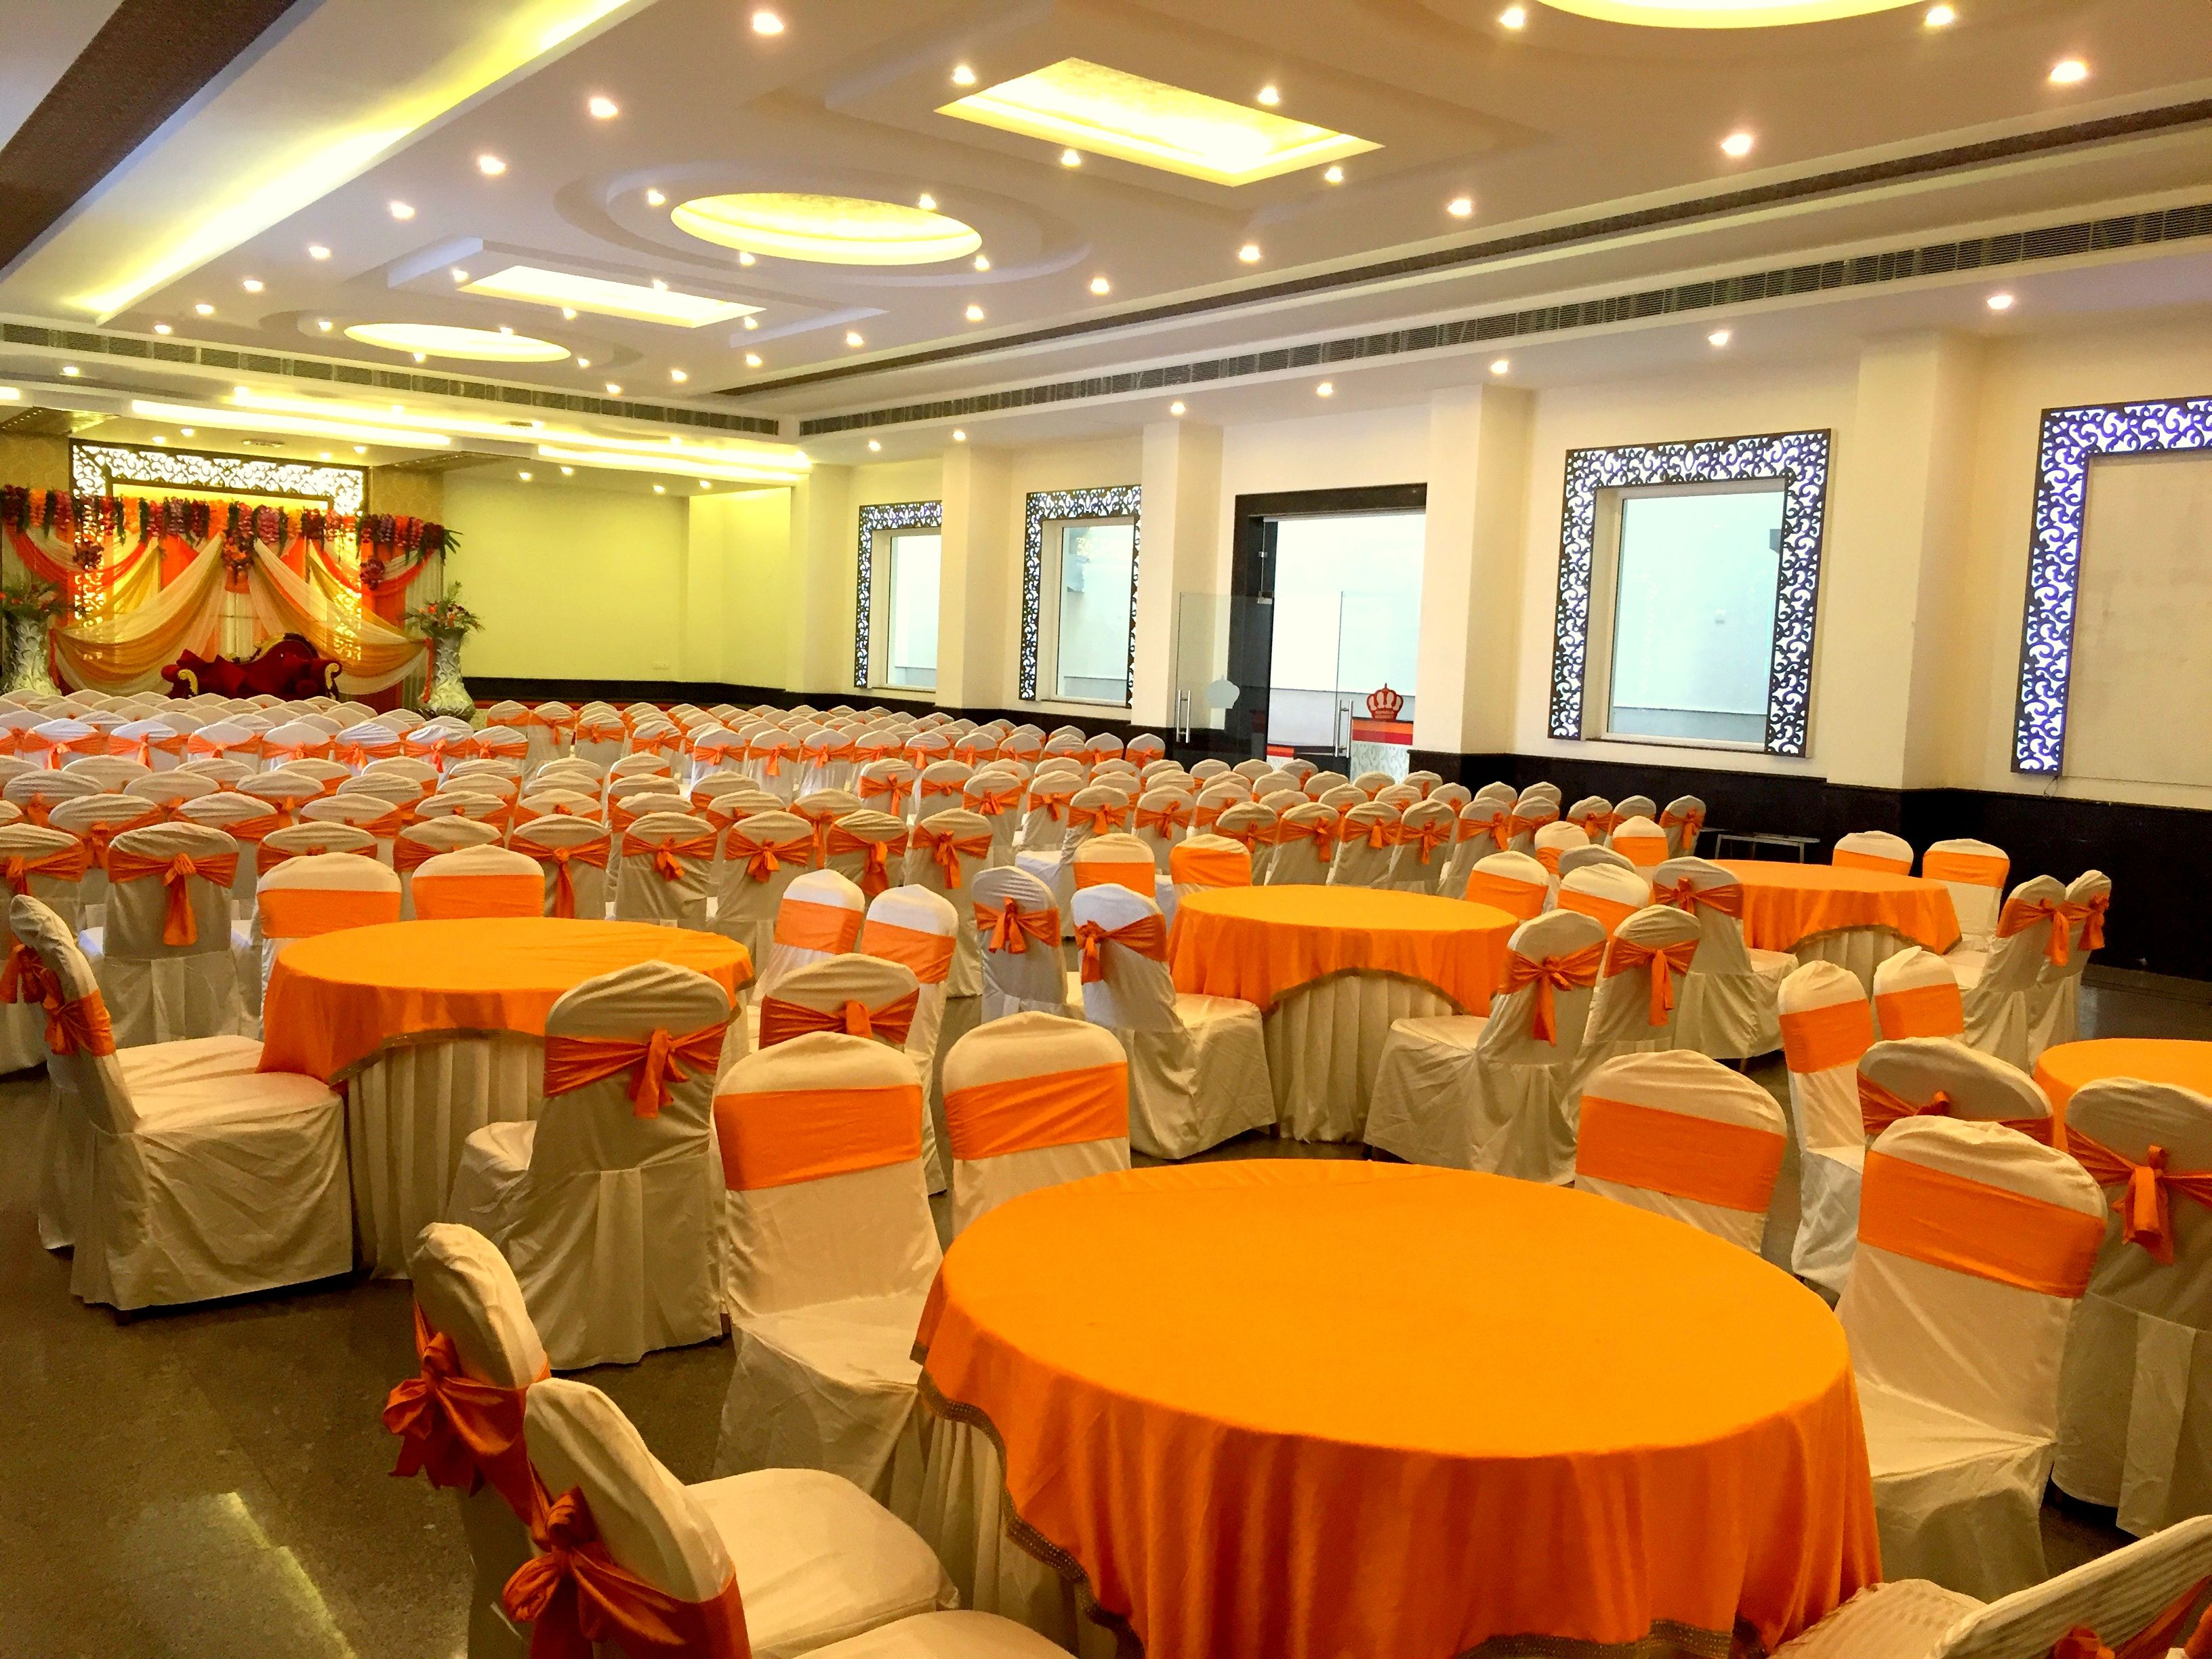 Banquet hall at hotel maharaja residency jalandhar new railway banquet hall at hotel maharaja residency jalandhar new railway road junglespirit Choice Image